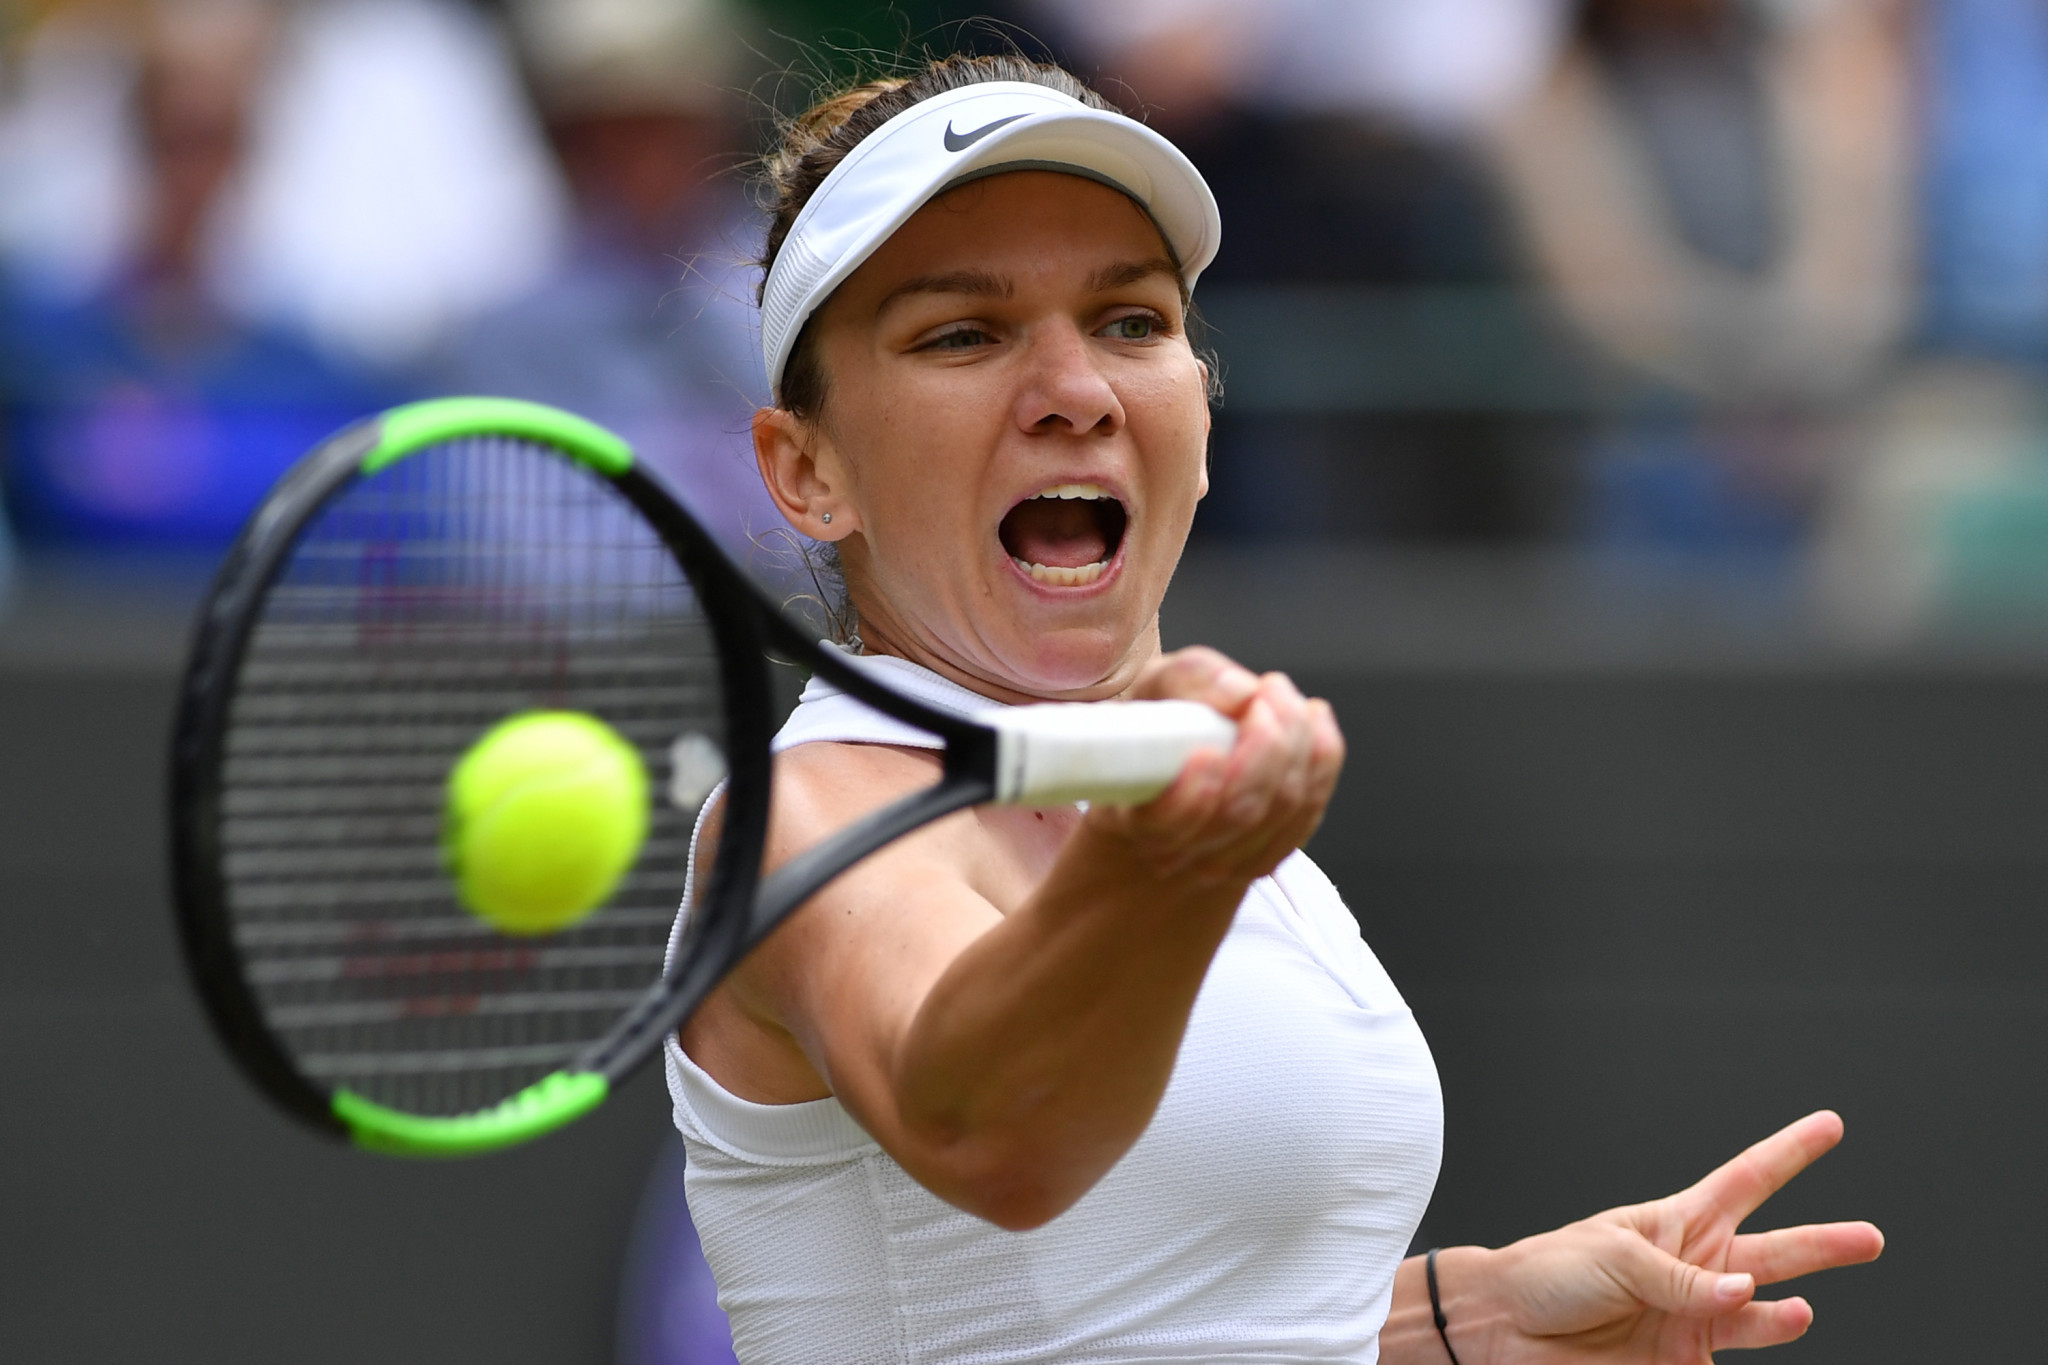 Romania's Simona Halep is through to the last four after defeating China's Zhang Shuai 7-6, 6-1 ©Getty Images